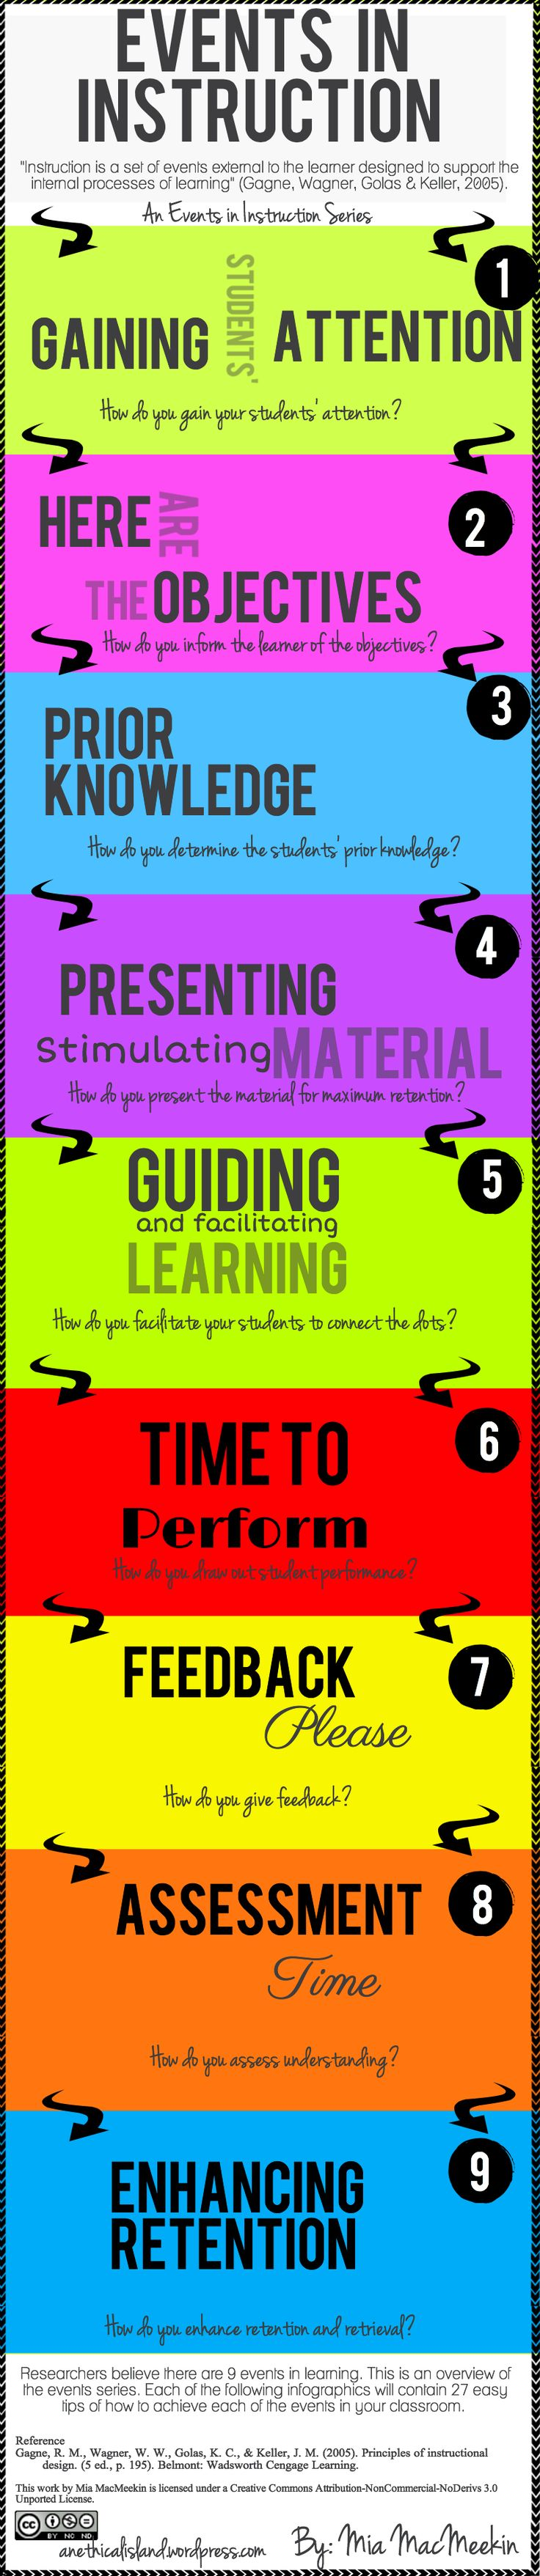 E learning poster designs - 9 Events In Instruction